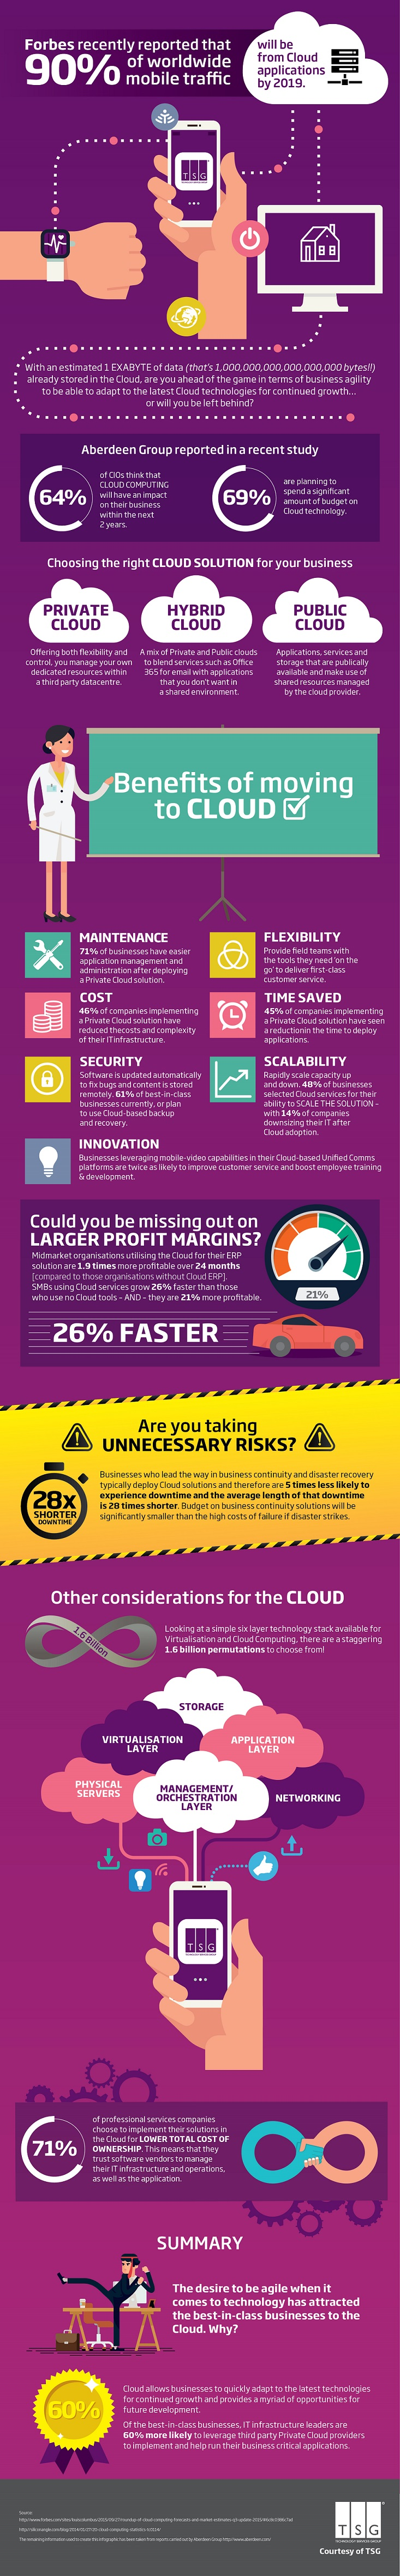 Cloud-infographic-from-TSG